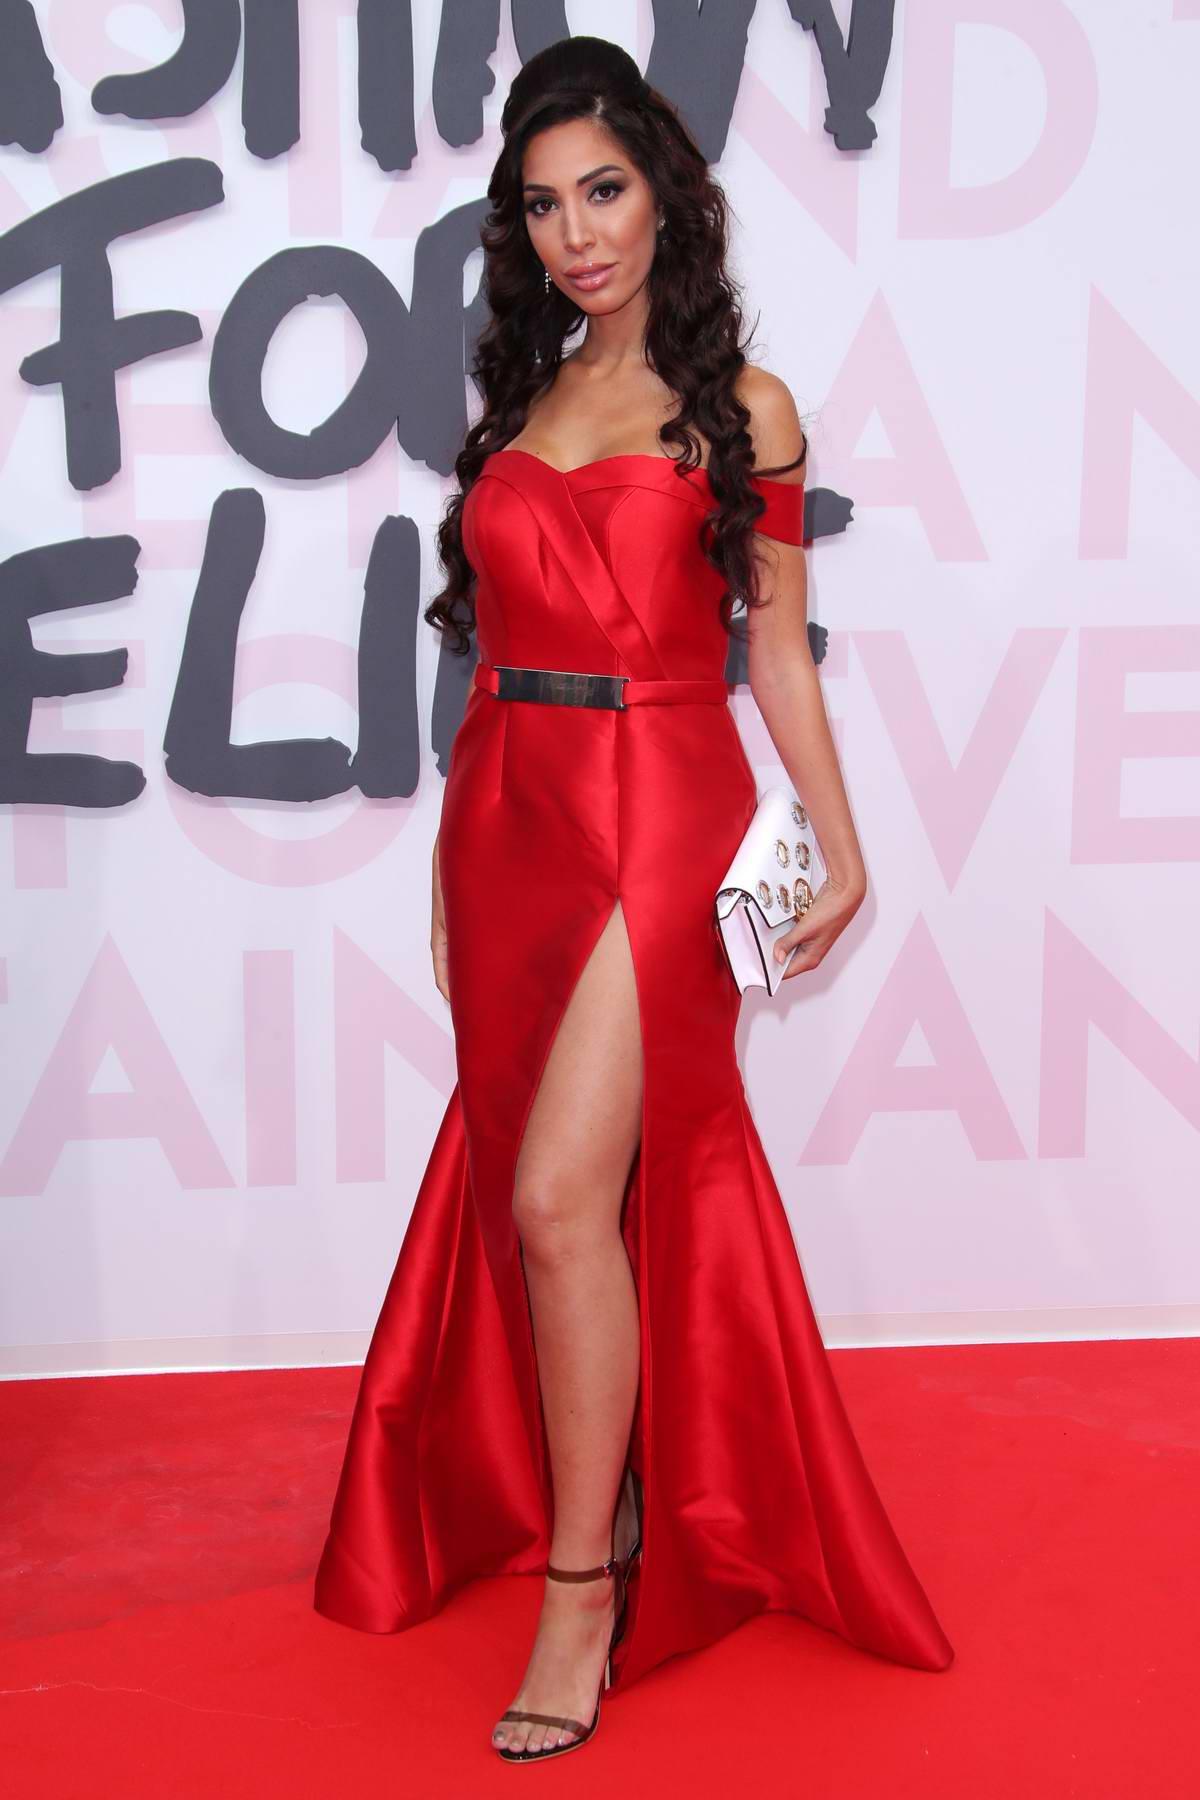 Farrah Abraham attends Fashion For Relief, Cannes 2018 during the 71st annual Cannes Film Festival, France